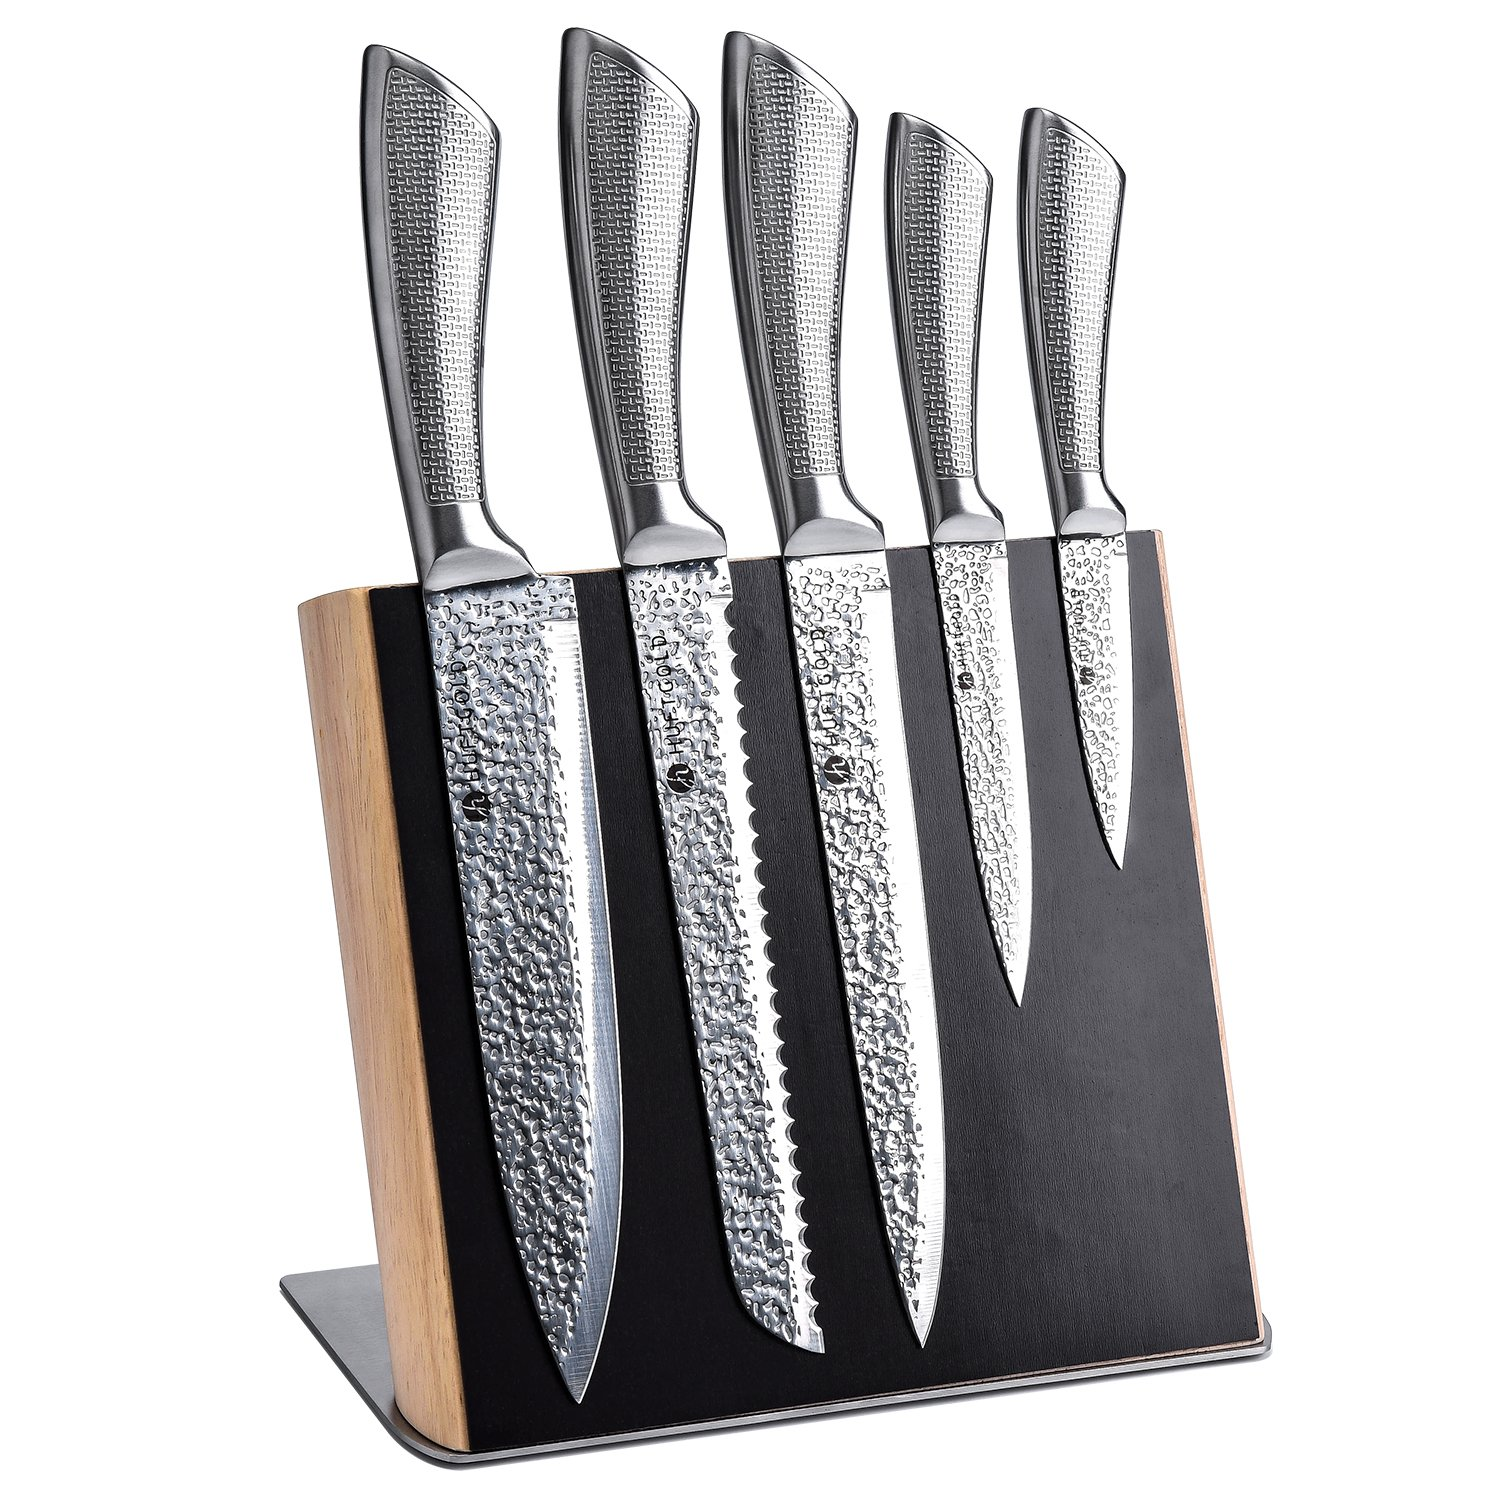 HUFTGOLD Knife Block Set Magnetic Wood, Kitchen Magnetic Knife Block Set, High Carbon Stainless Steel Basic Knife sets with Magnetic Holder,6-Piece